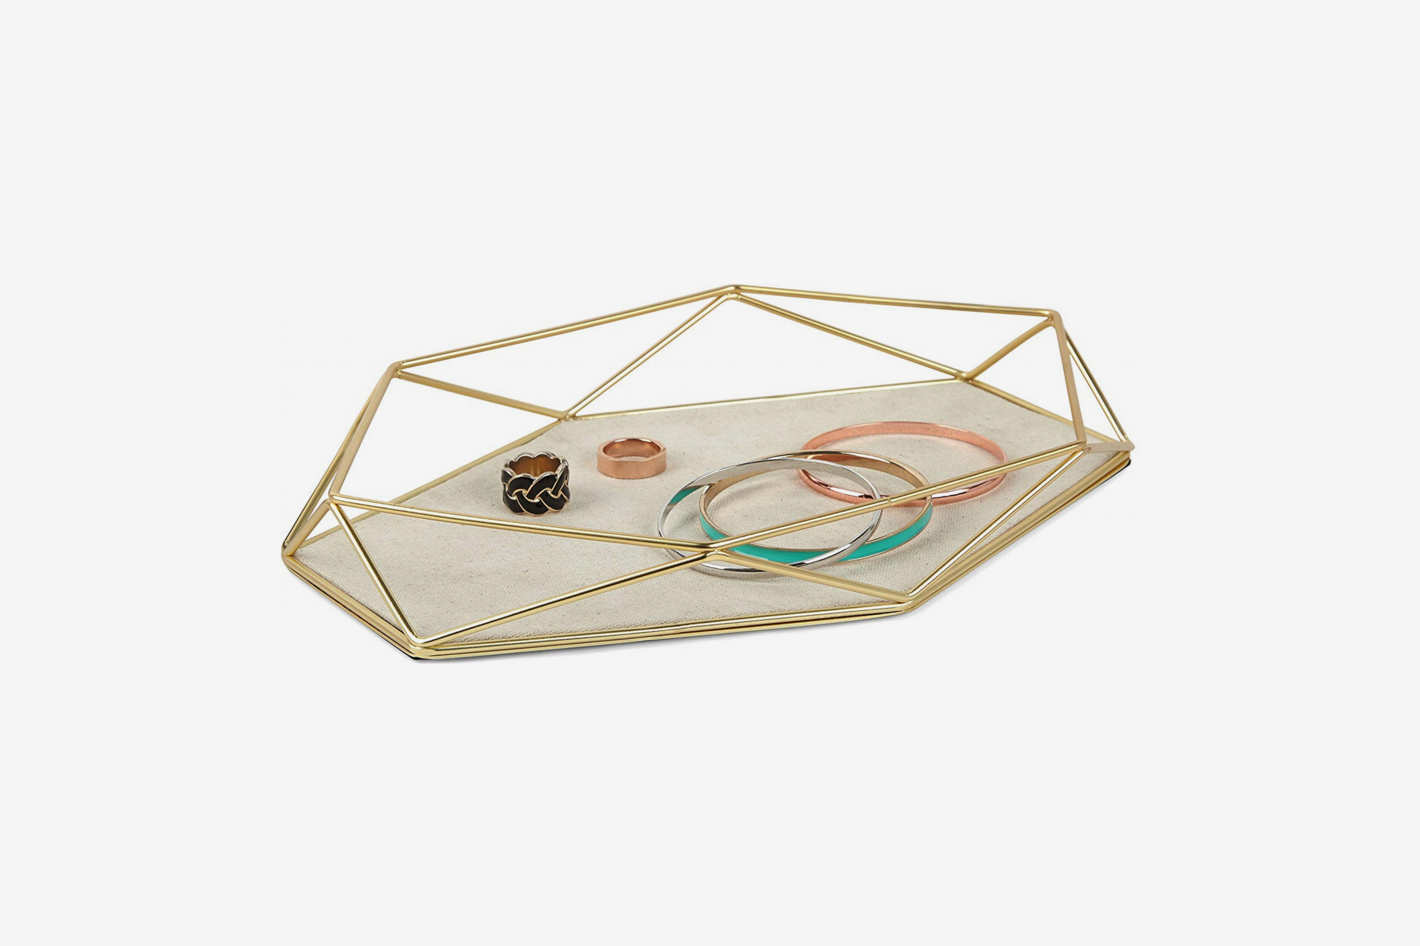 Umbra Prisma Tray, Geometric and Brass Plated Jewelry Storage